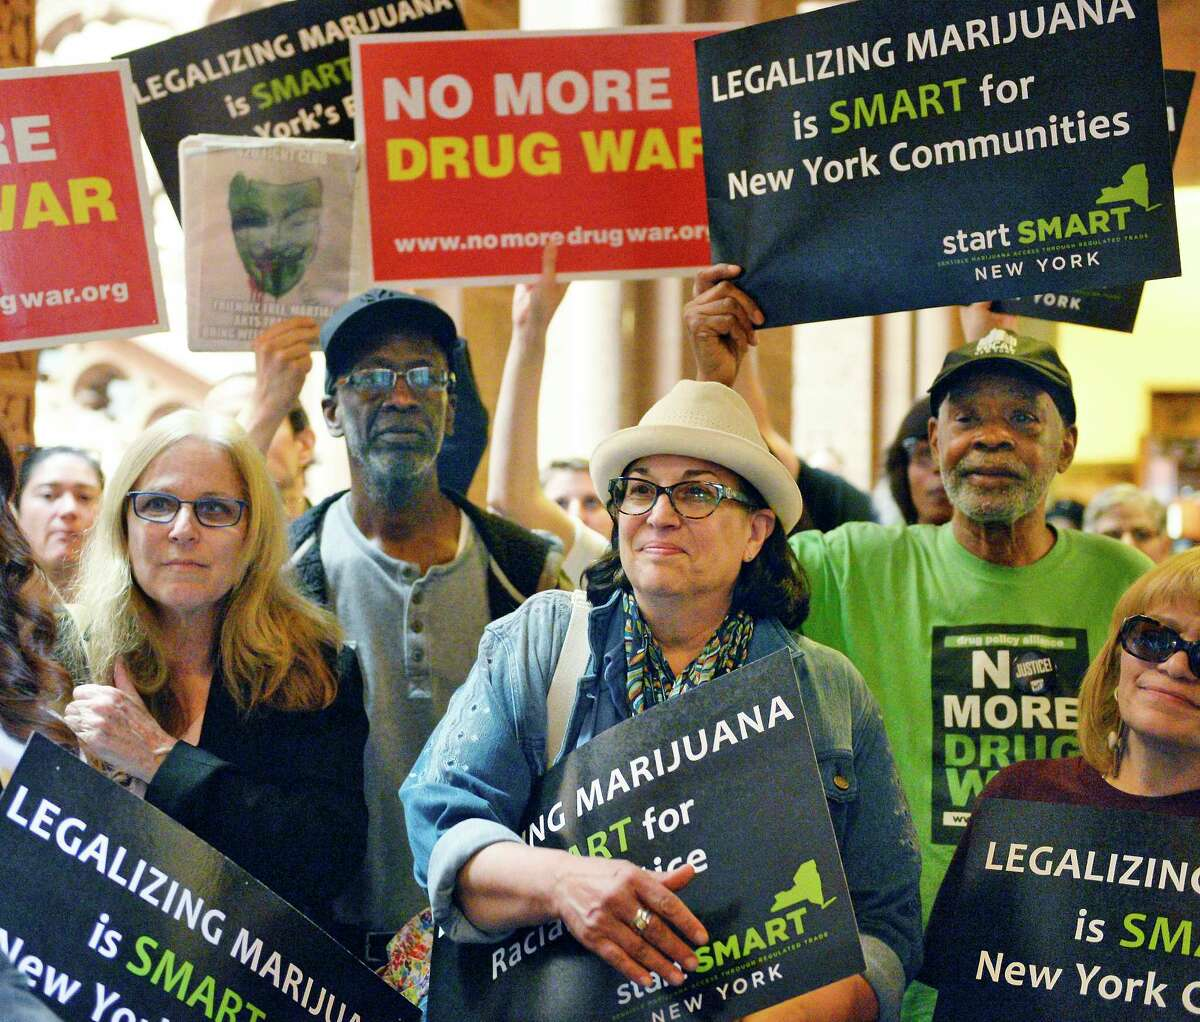 Advocates rally outside the Senate Chambers to demand marijuana legalization in New York at the Capitol Tuesday May 8, 2018 in Albany, NY. (John Carl D'Annibale/Times Union)